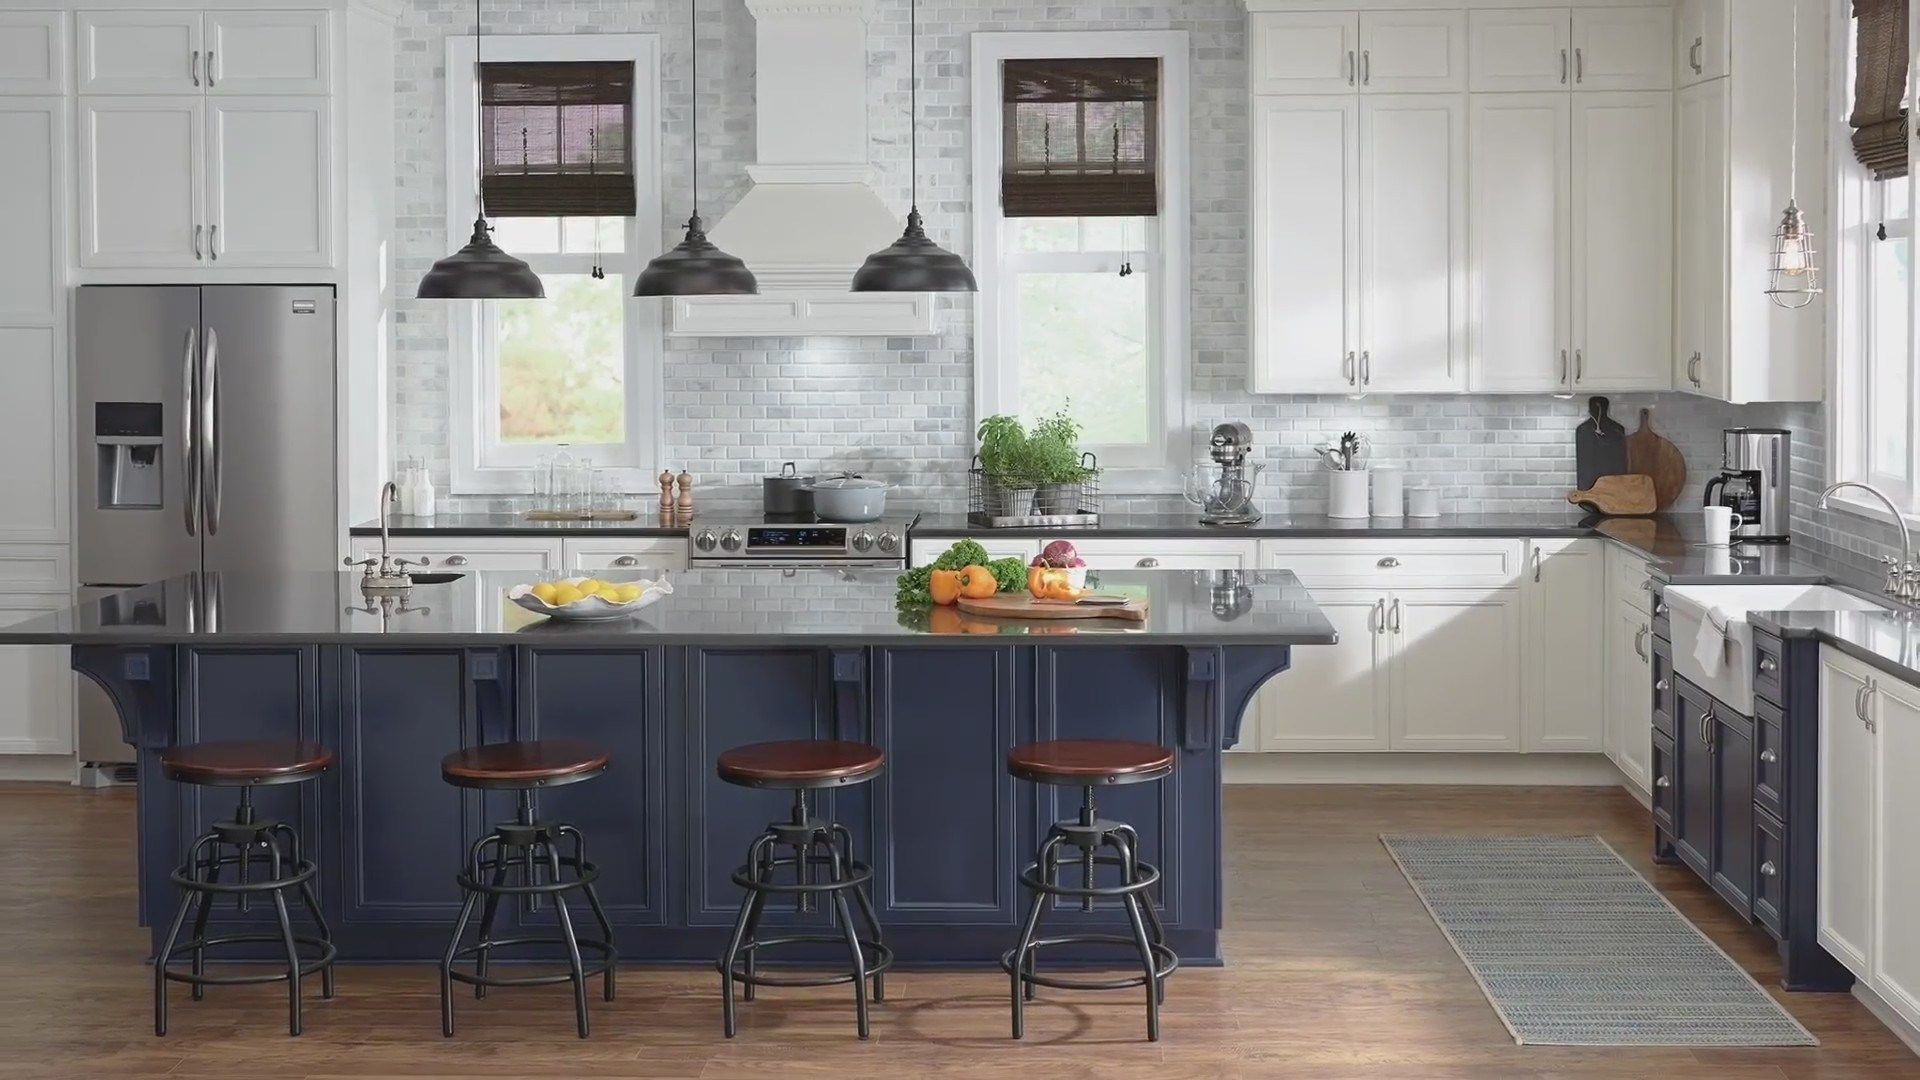 Google Image Result For Https I0 Wp Com Www Pahomepage Com Wp Content Uploads Sites 91 2019 03 Pa Liv In 2020 Home Depot Kitchen Kitchen Cabinet Colors Fresh Kitchen